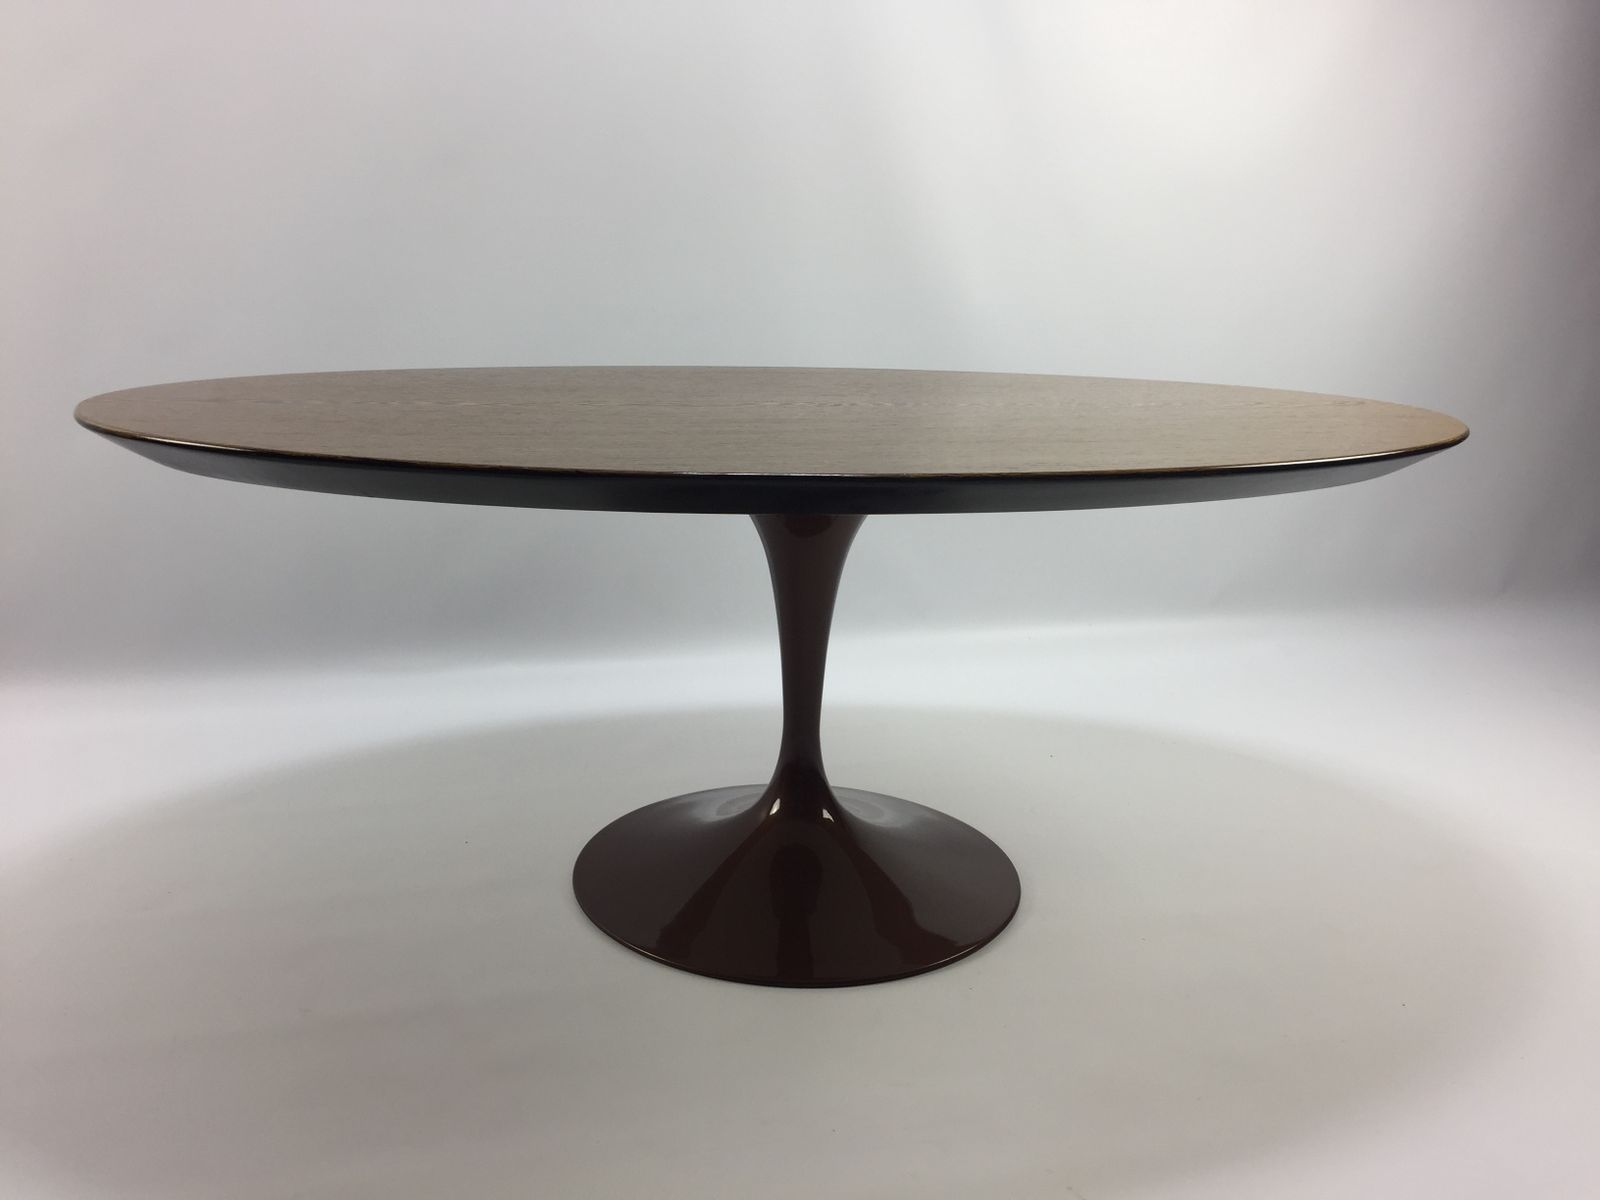 Coffee Table By Eero Saarinen For Knoll International 1970s For Sale At Pamono